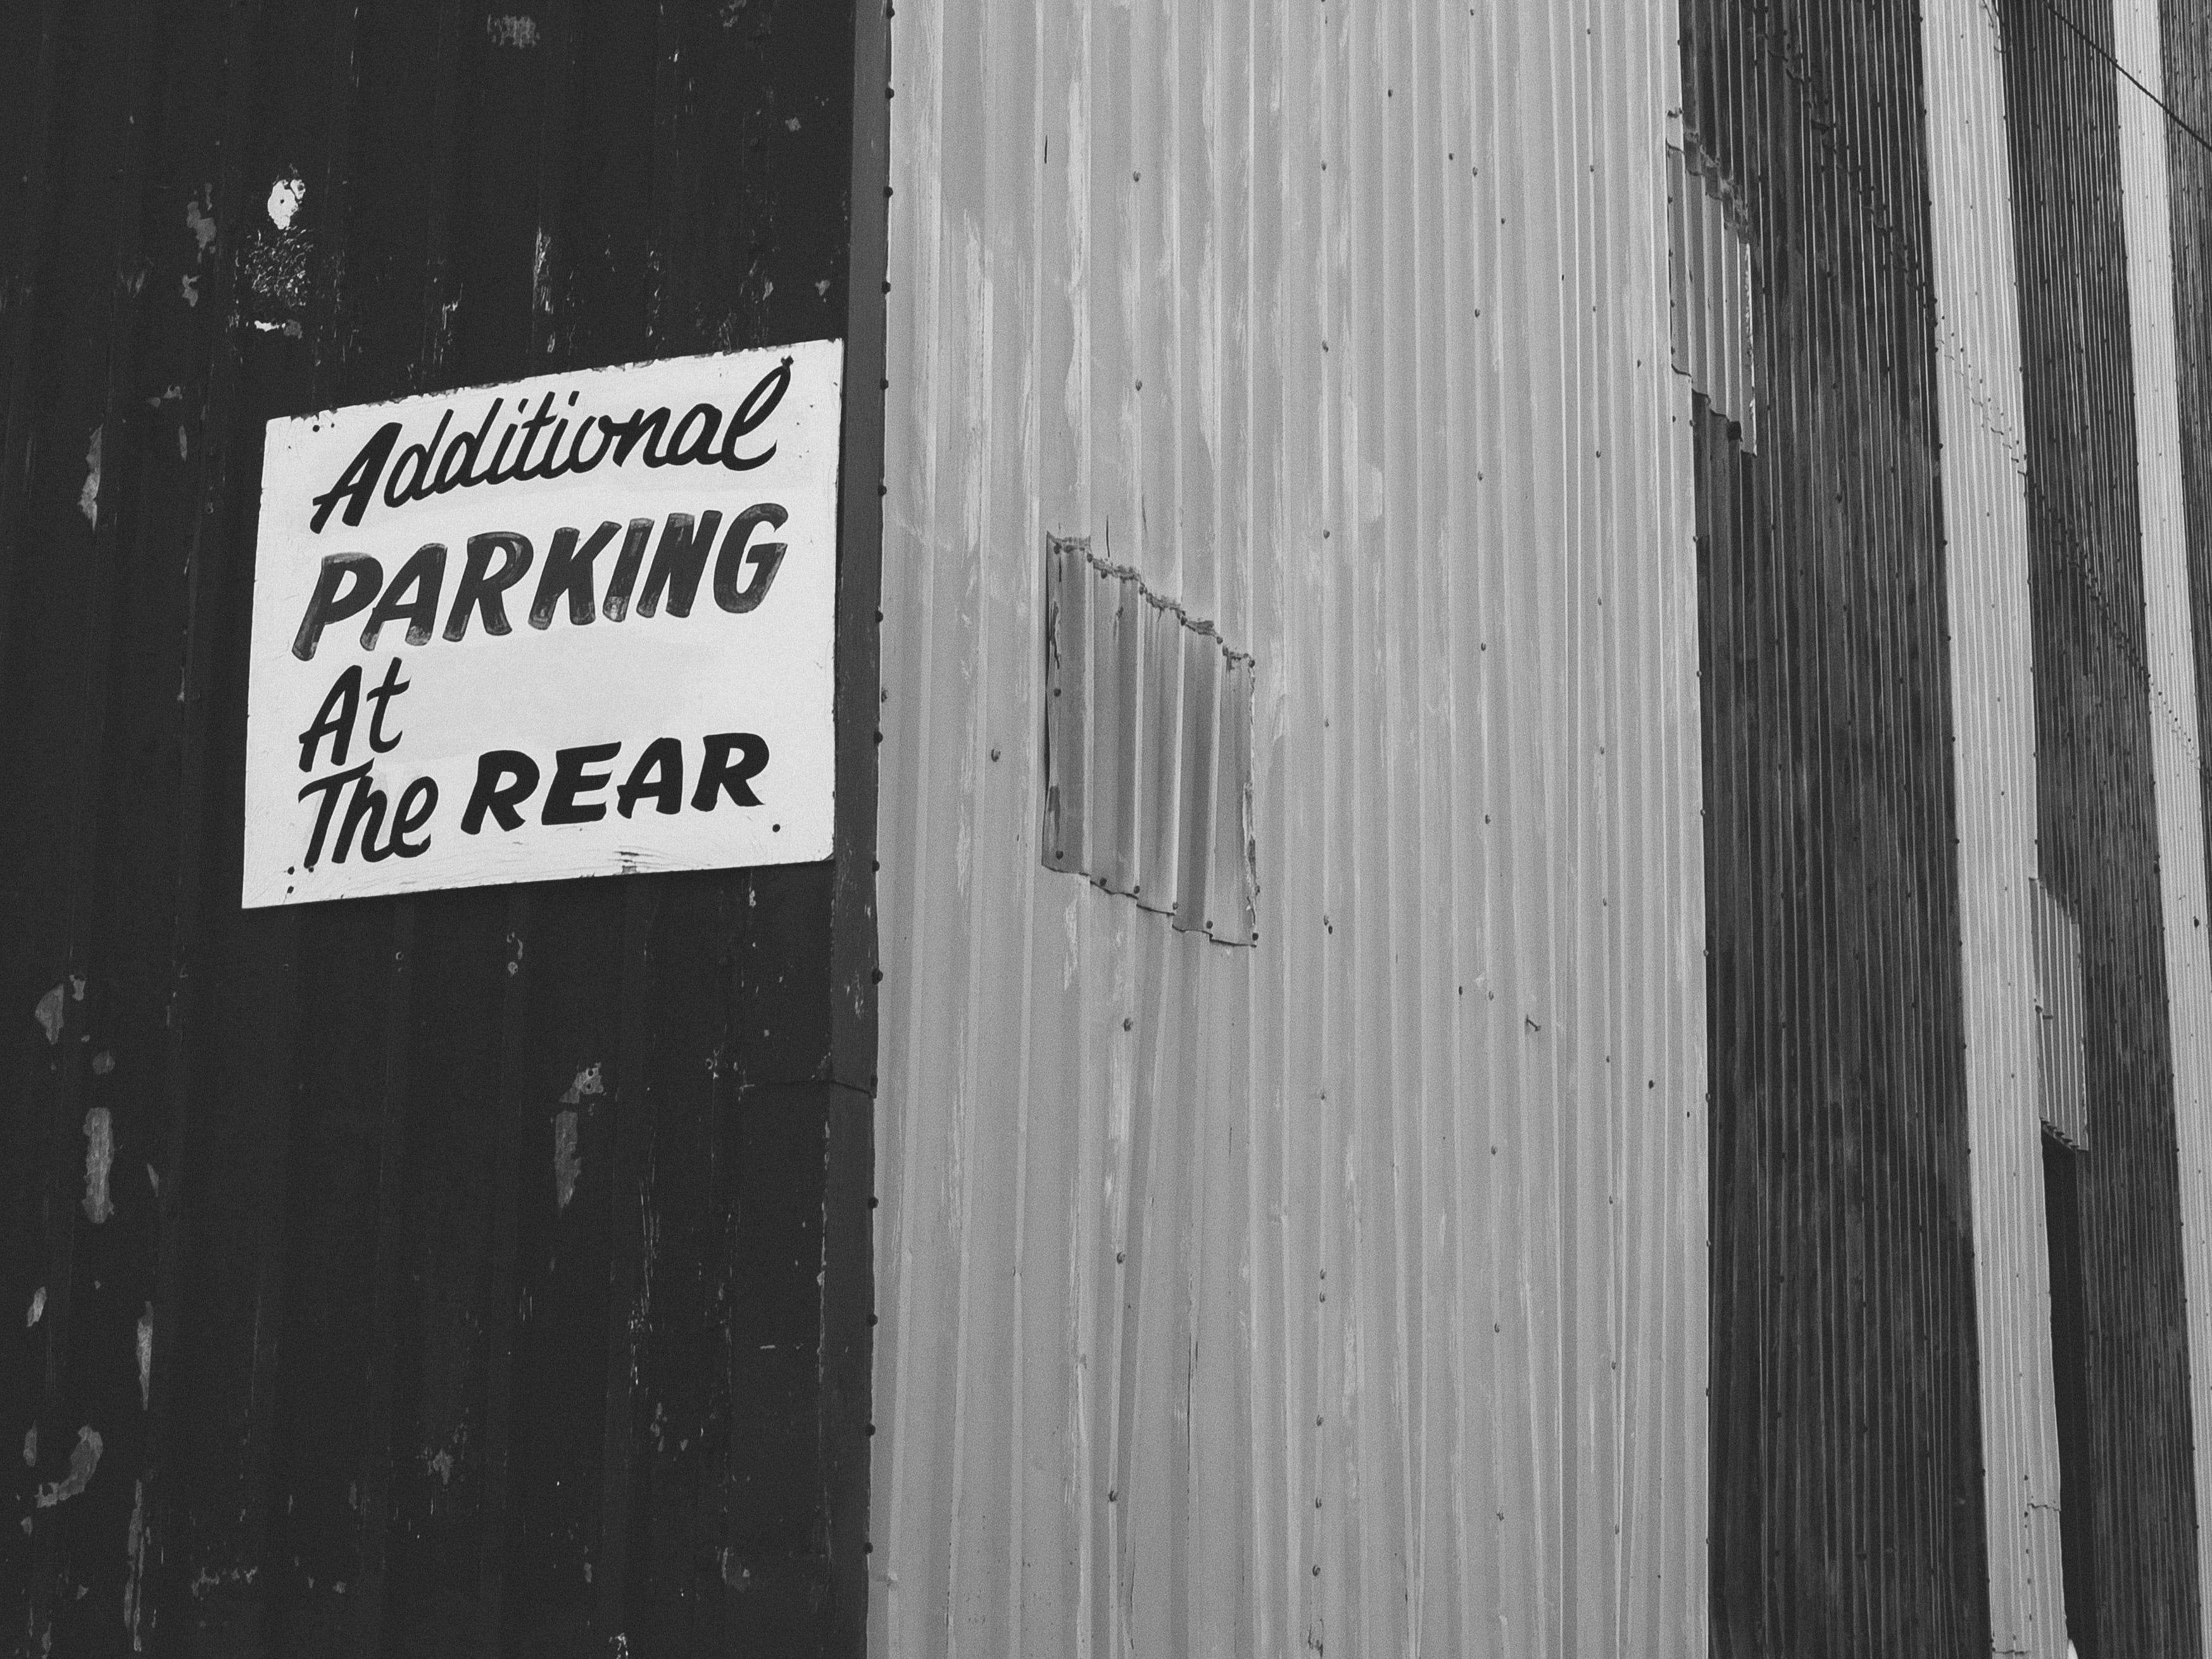 A photograph depicting Hay Market Square Bowling Alley Parking Sign Bw